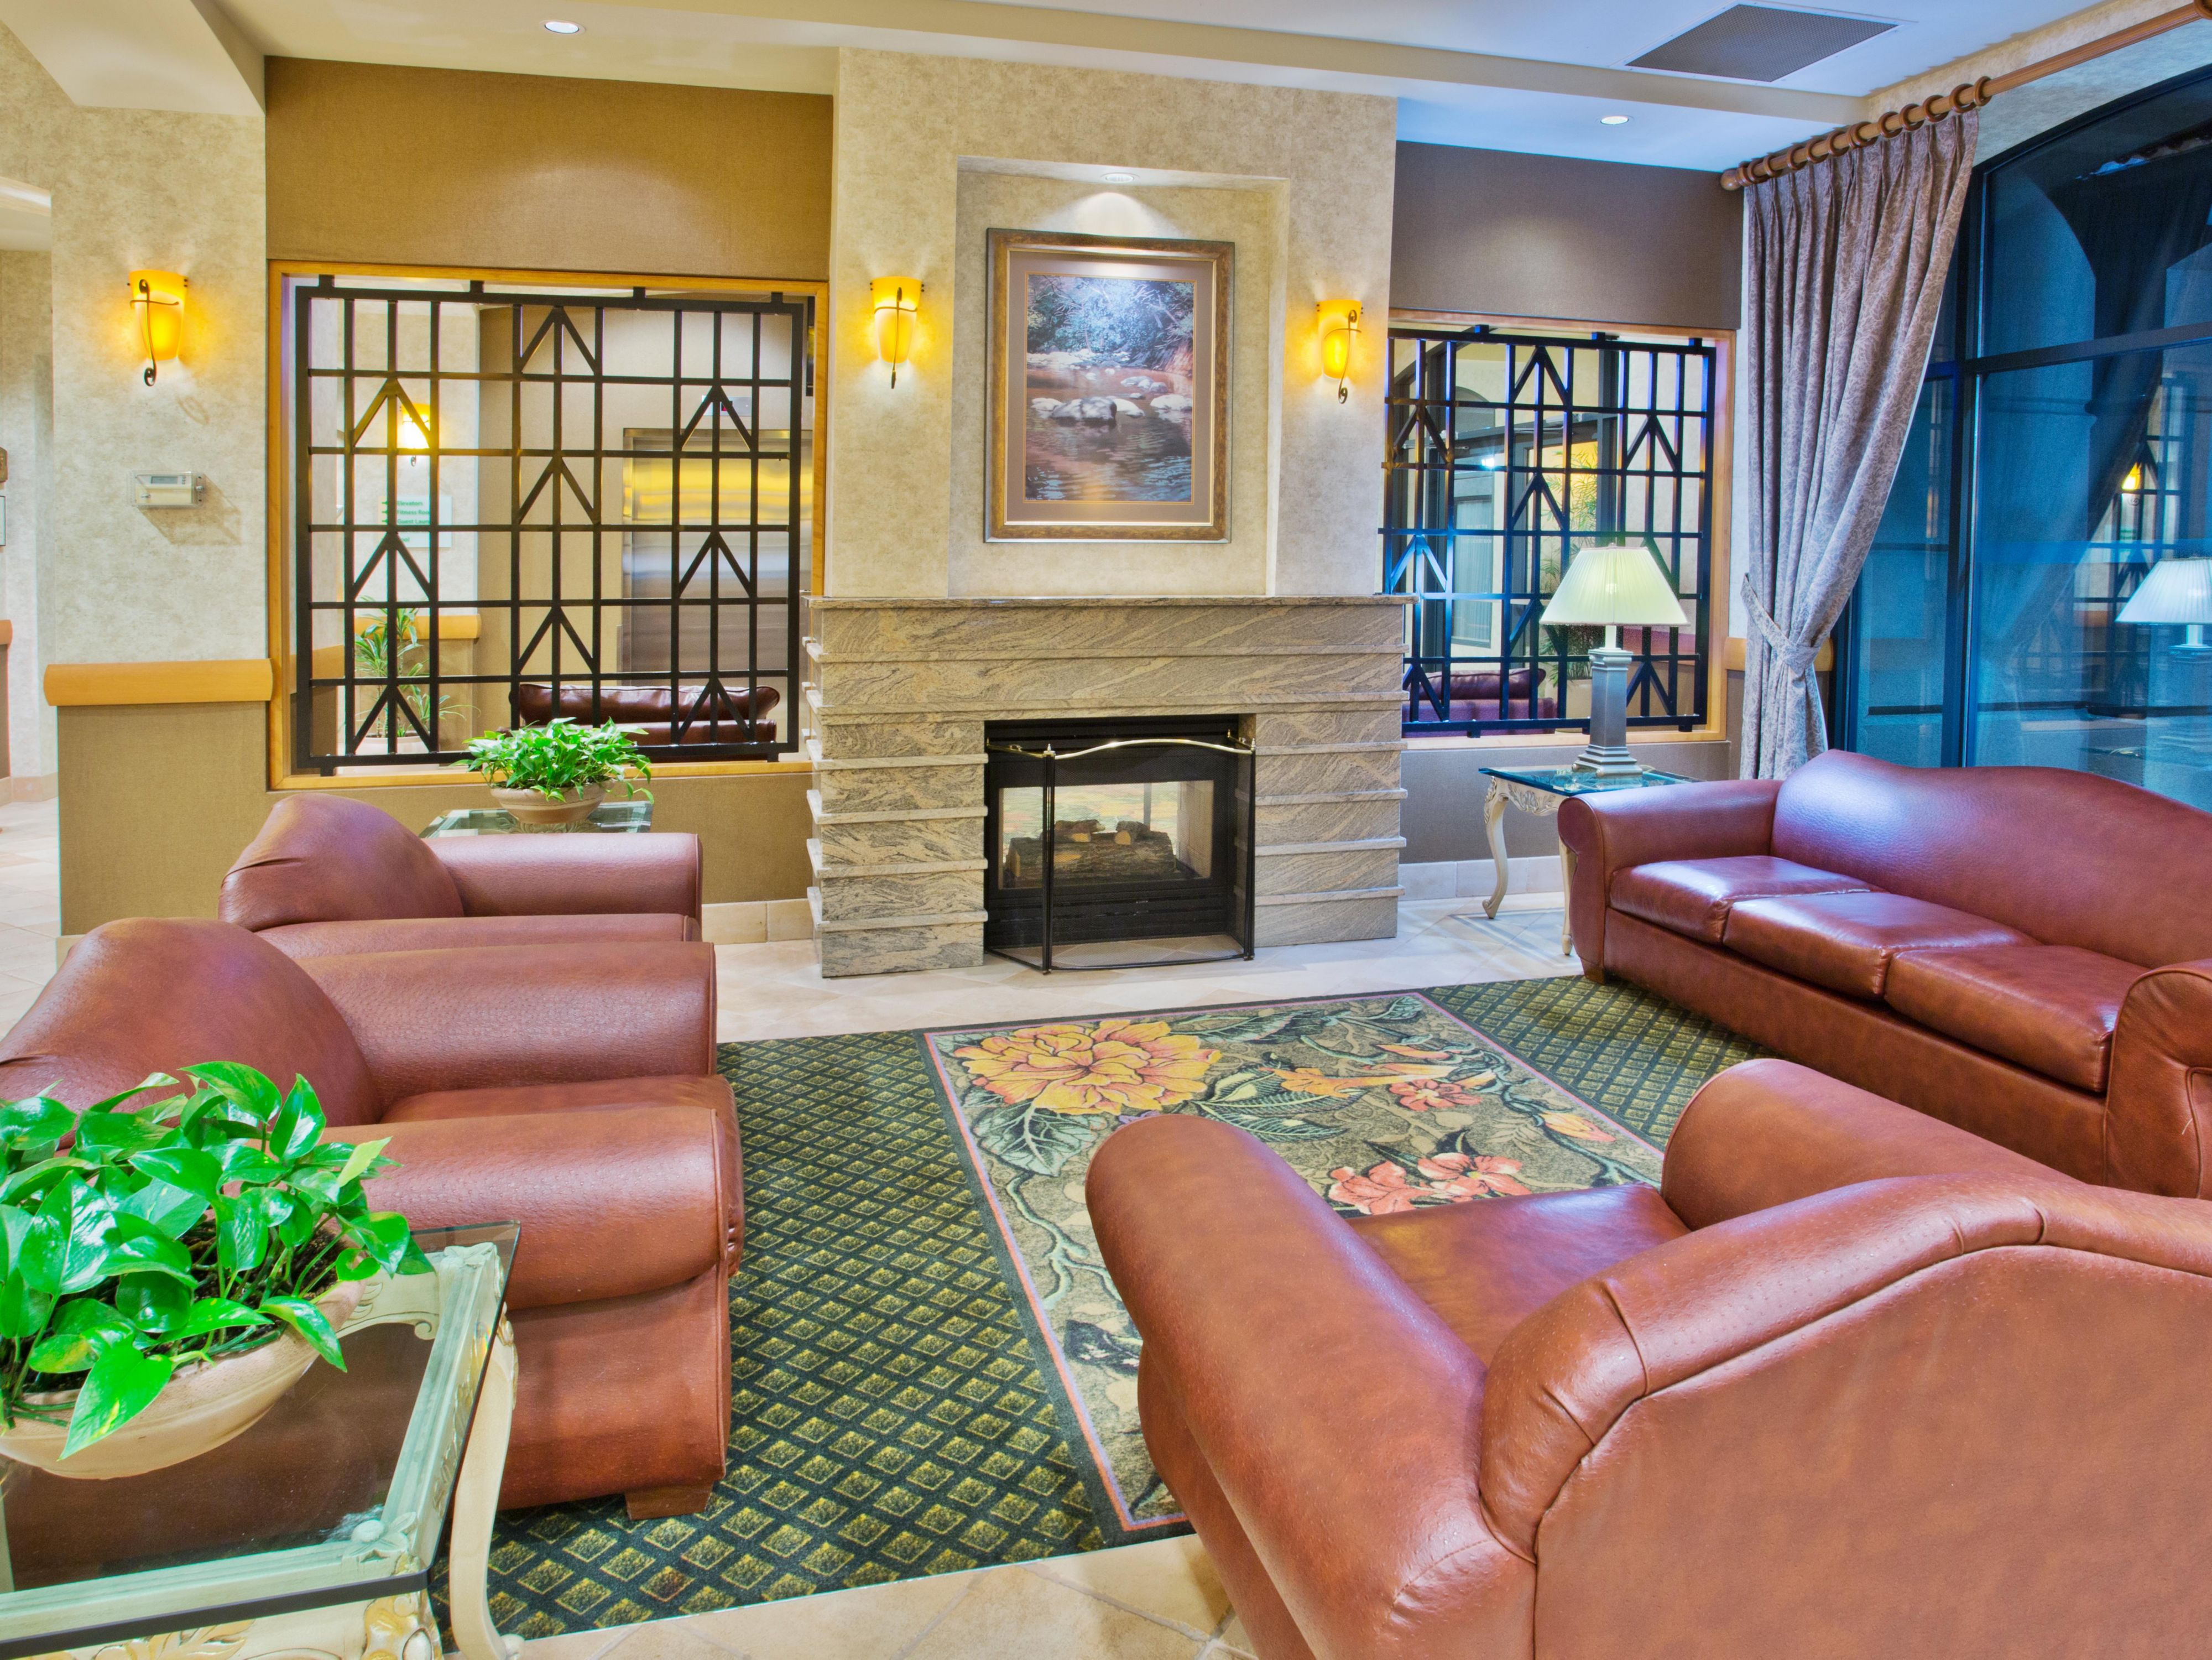 Relax and enjoy our lobby lounge